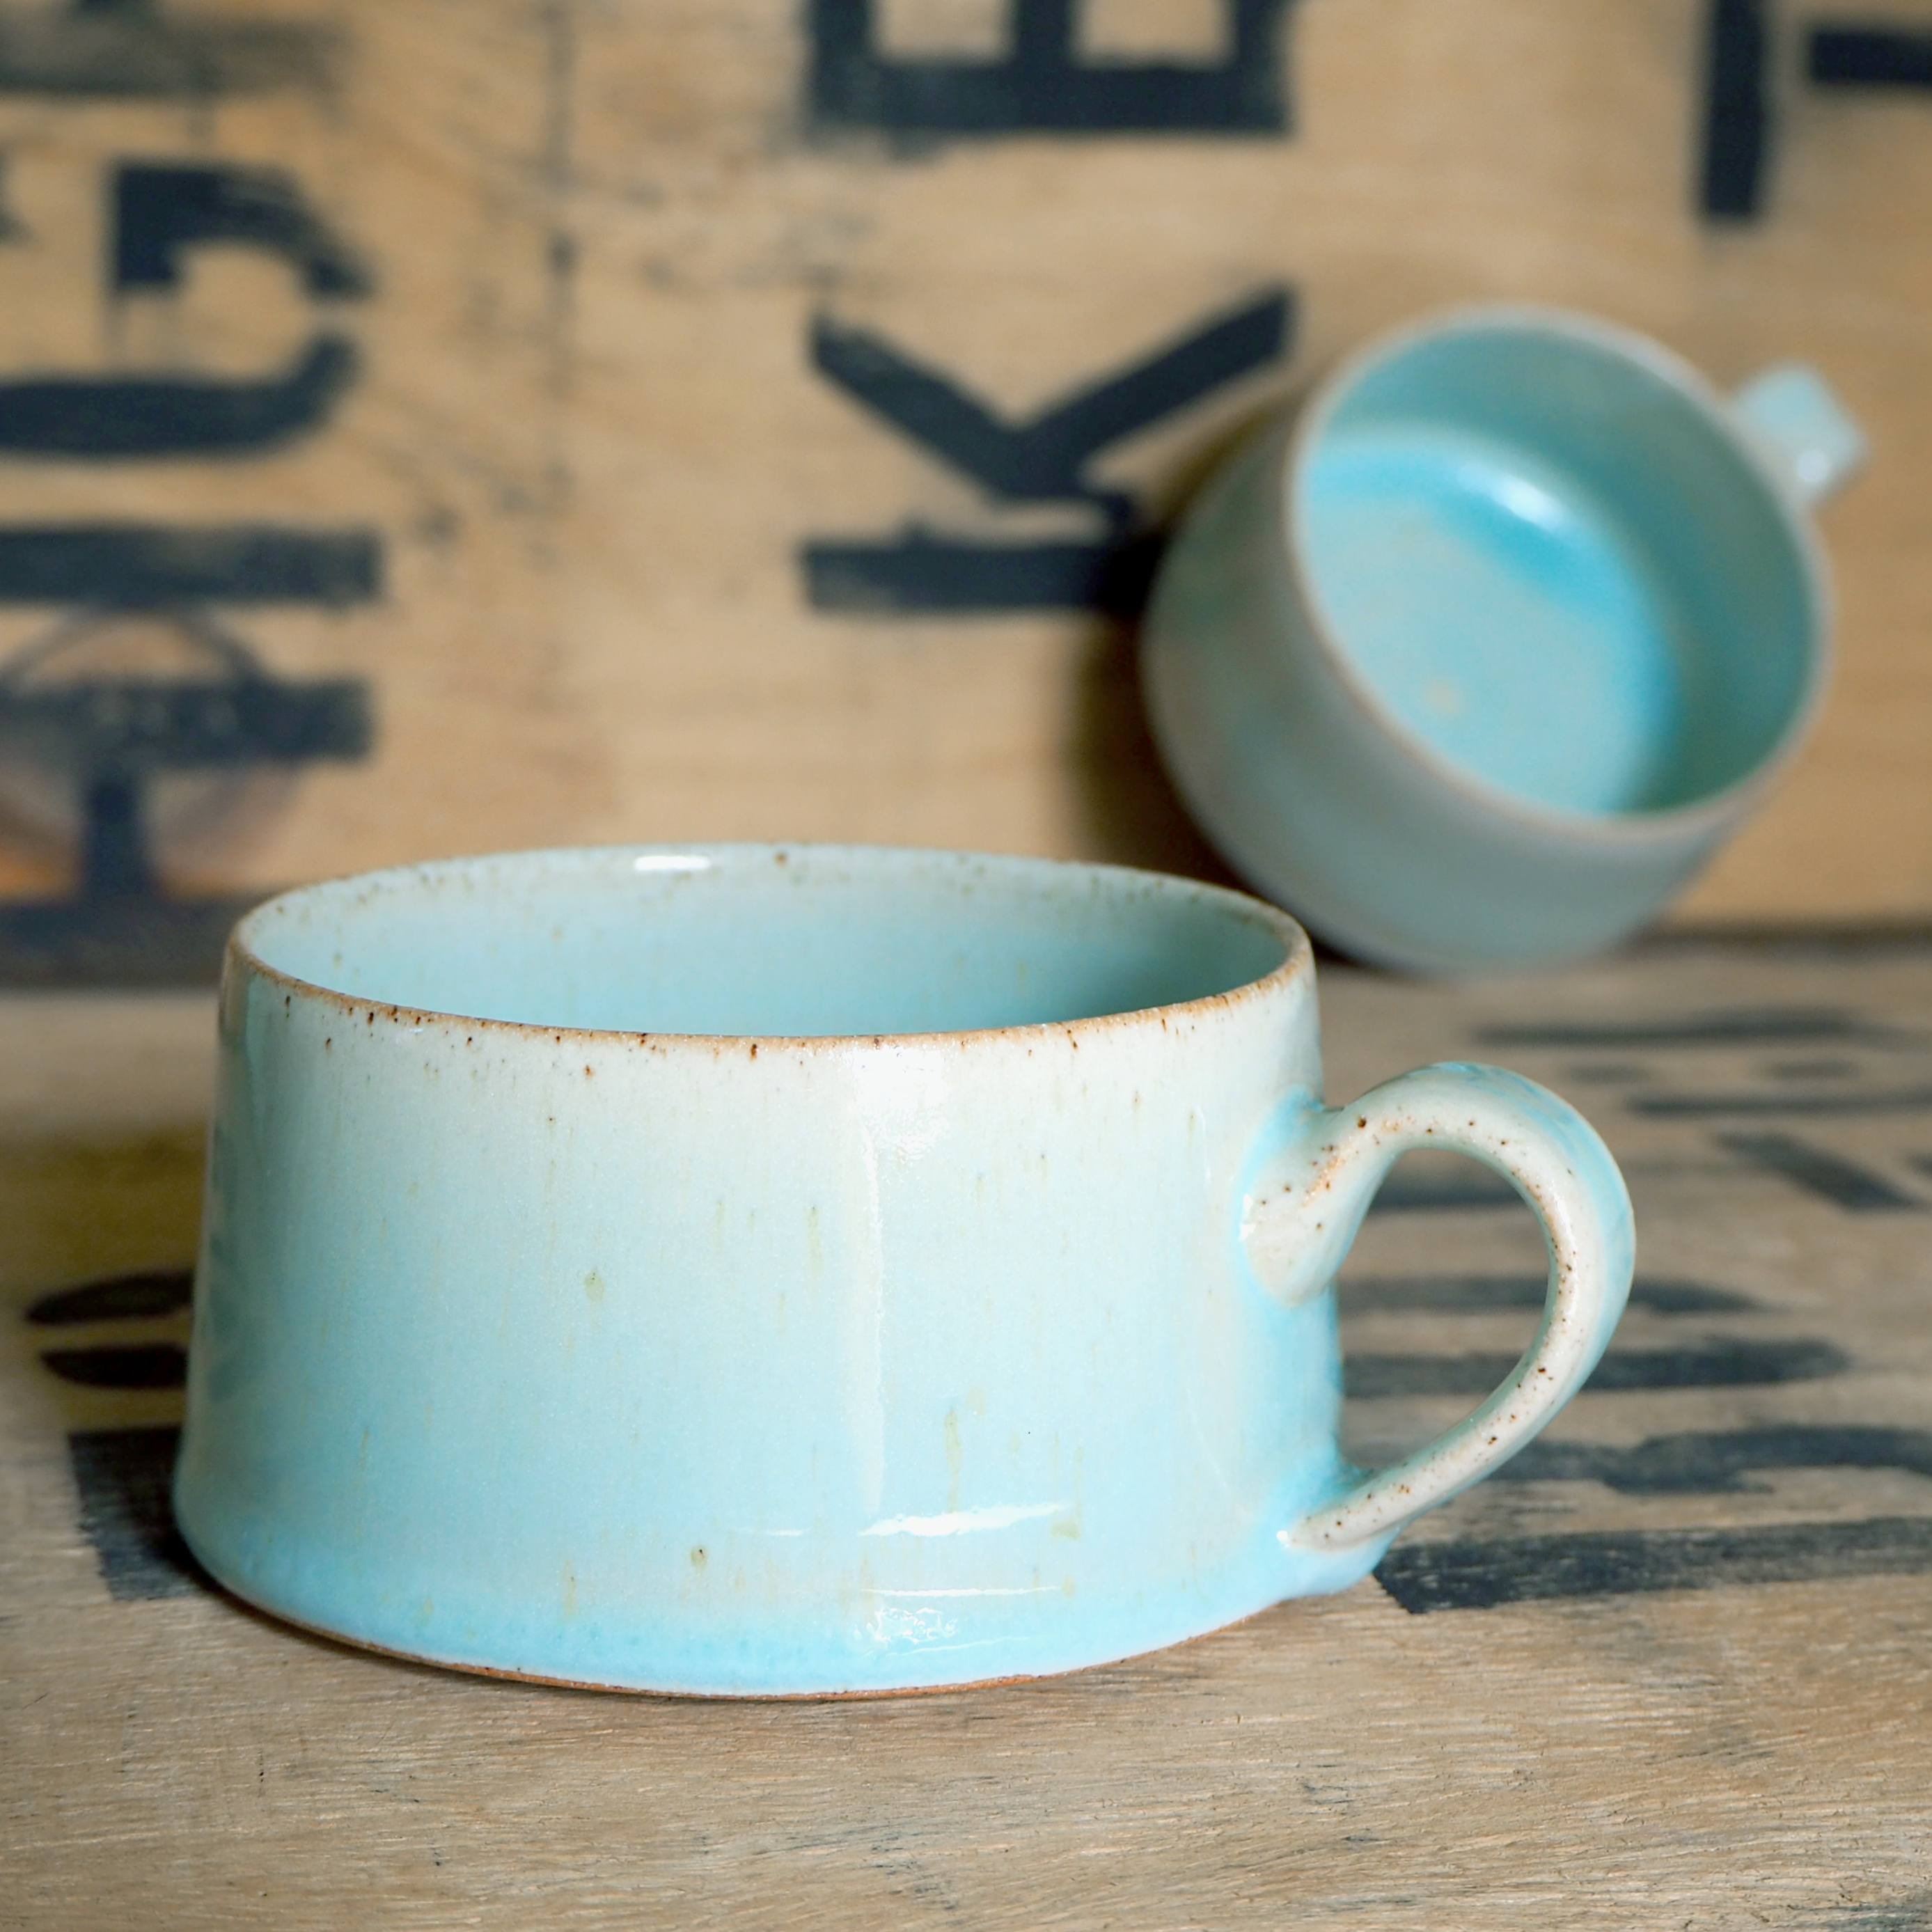 Turquoise Cup By Raphaela Seck